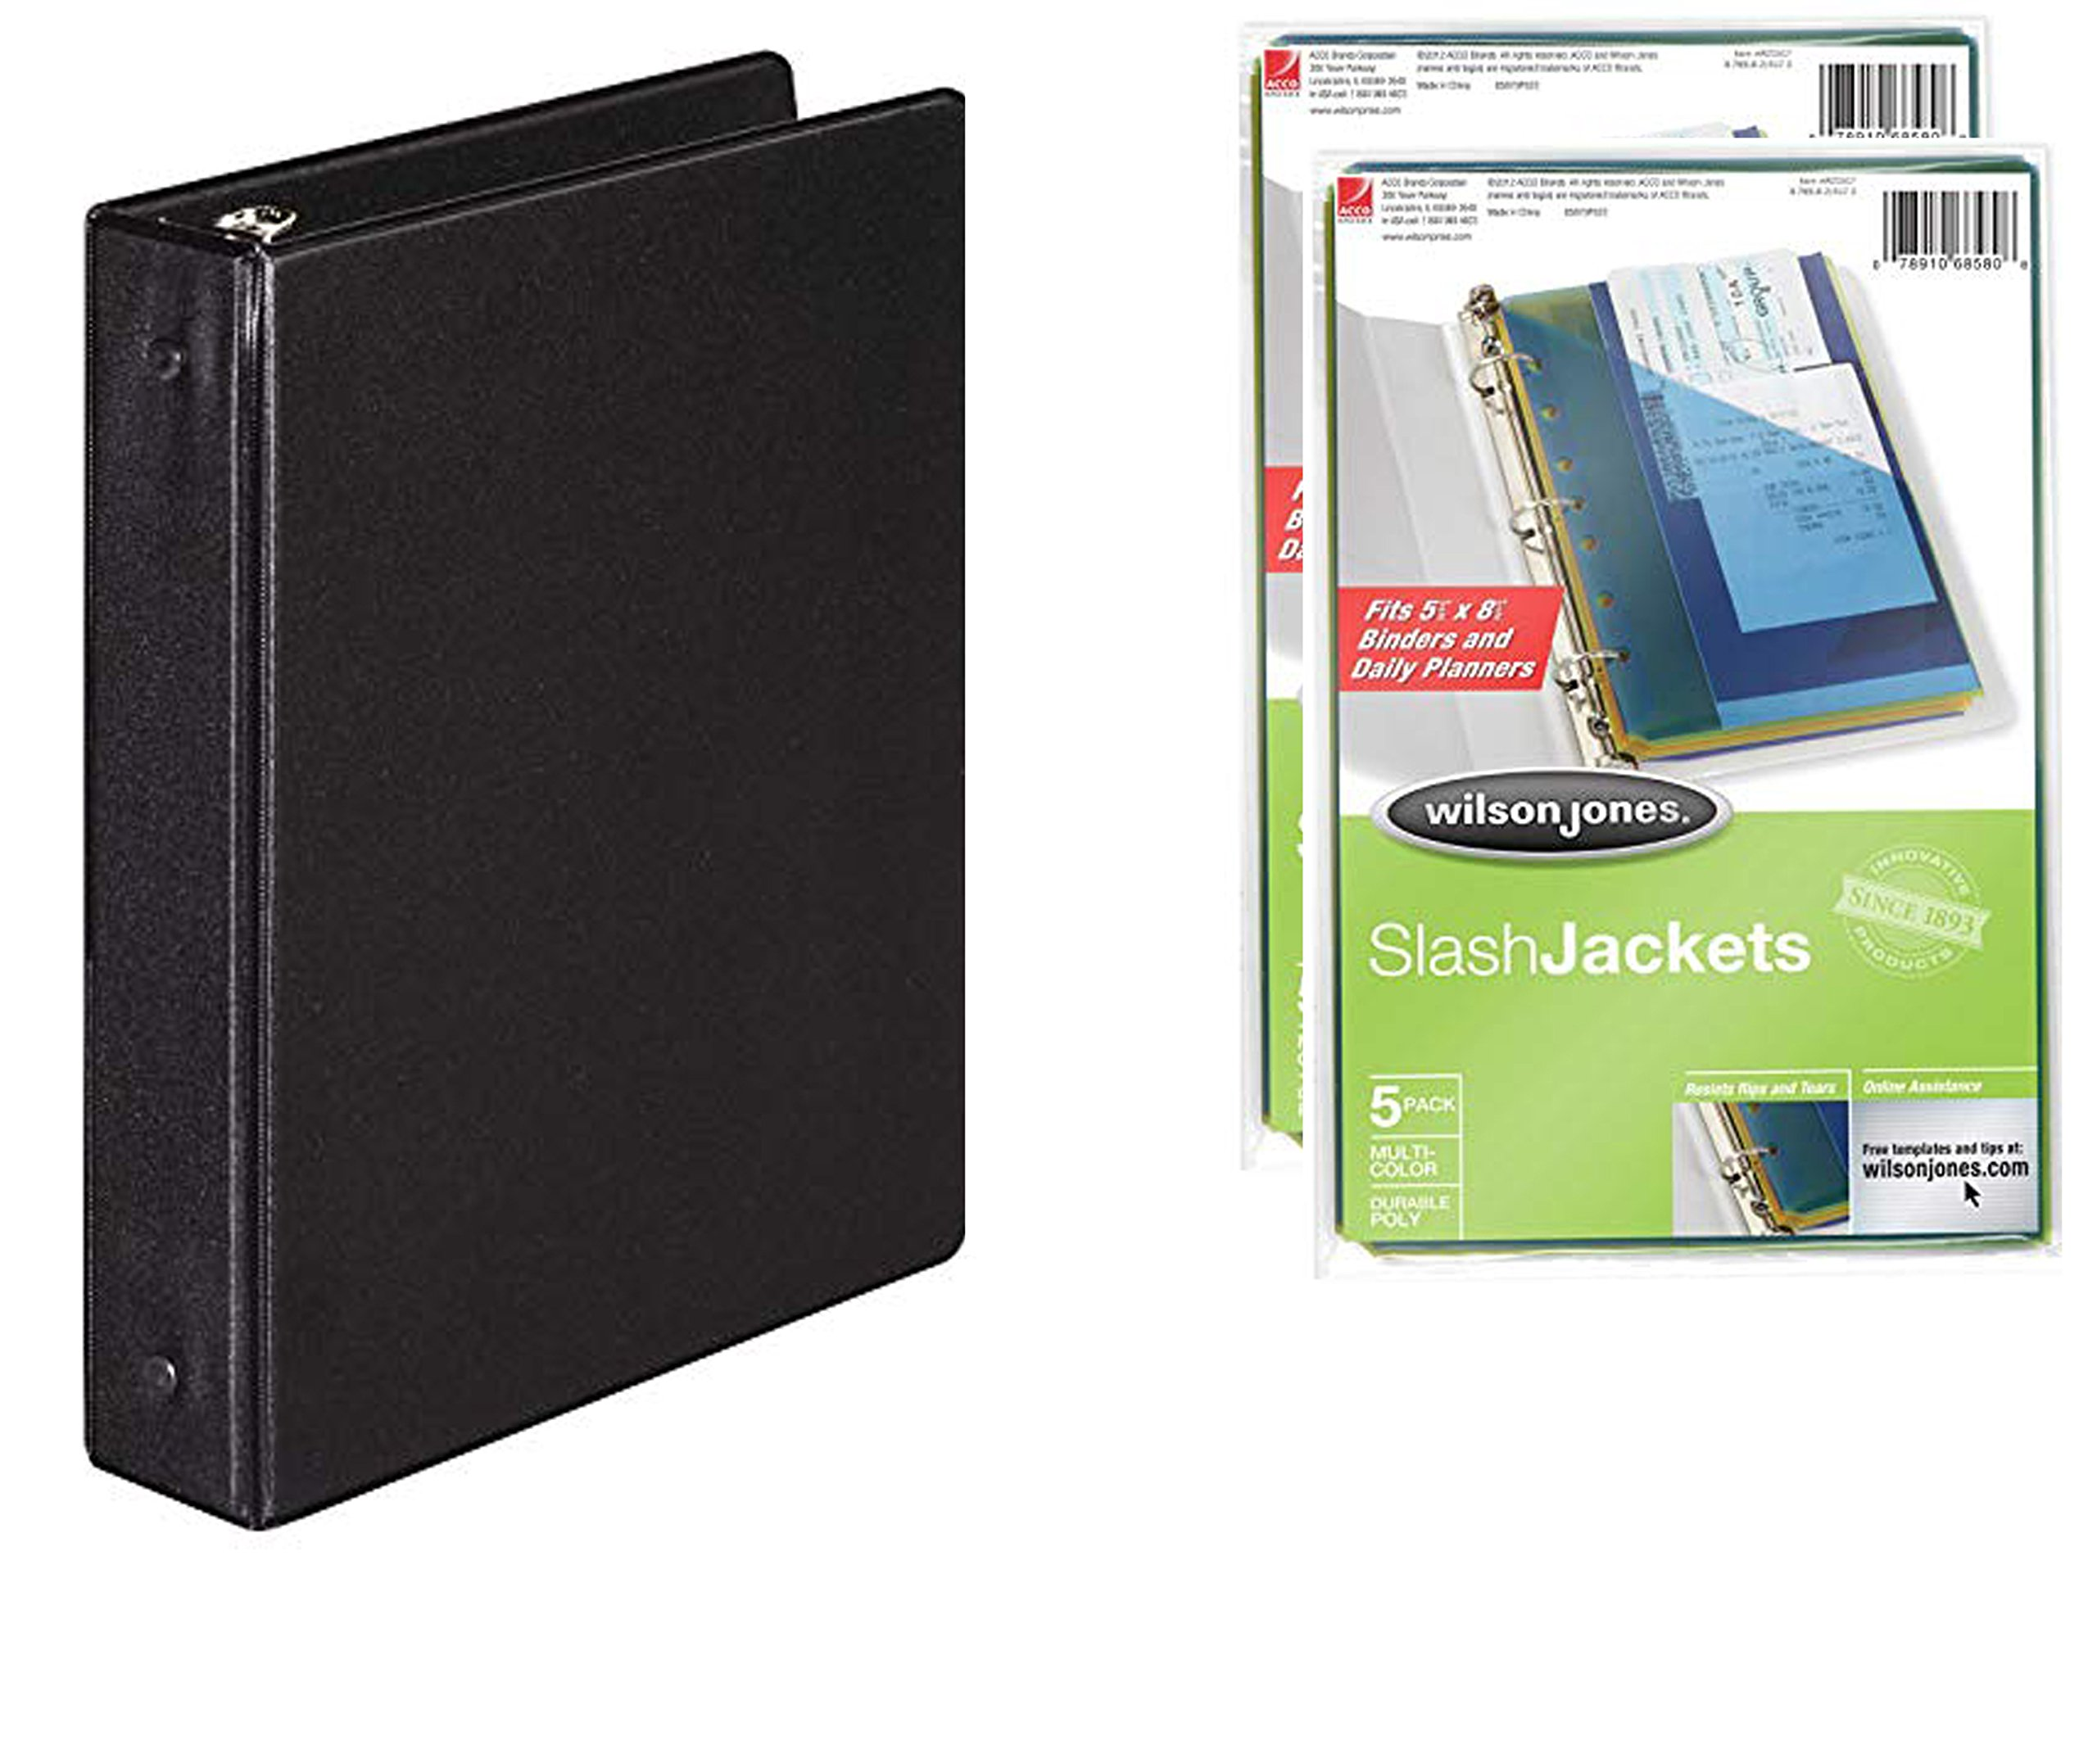 Wilson Jones Basic Round Ring Black Vinyl Binder (5.5 x 8.5 in, 175-Sheet, 1-in. Rings) Bundle [Pack of 1] incl. (2) Sets of 5-Pack, Mini Poly Slash Jackets (5.5 x 8.5 in, Assorted Colors)